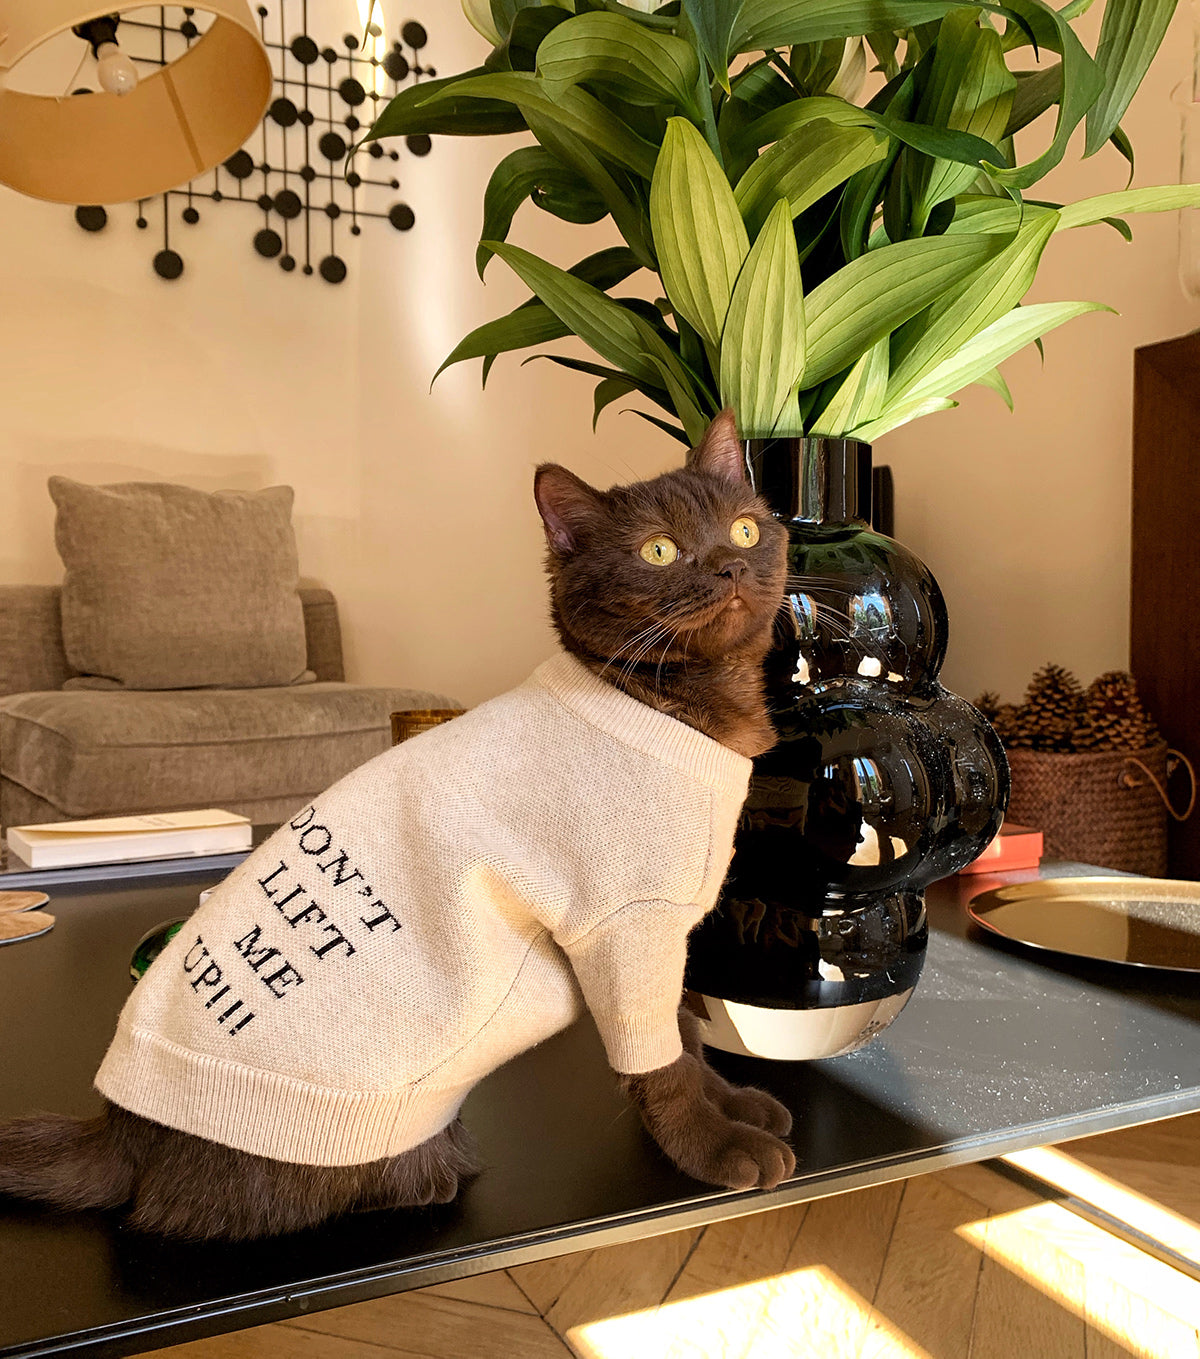 A cat with an OverGlam jumper posing on a coffee table